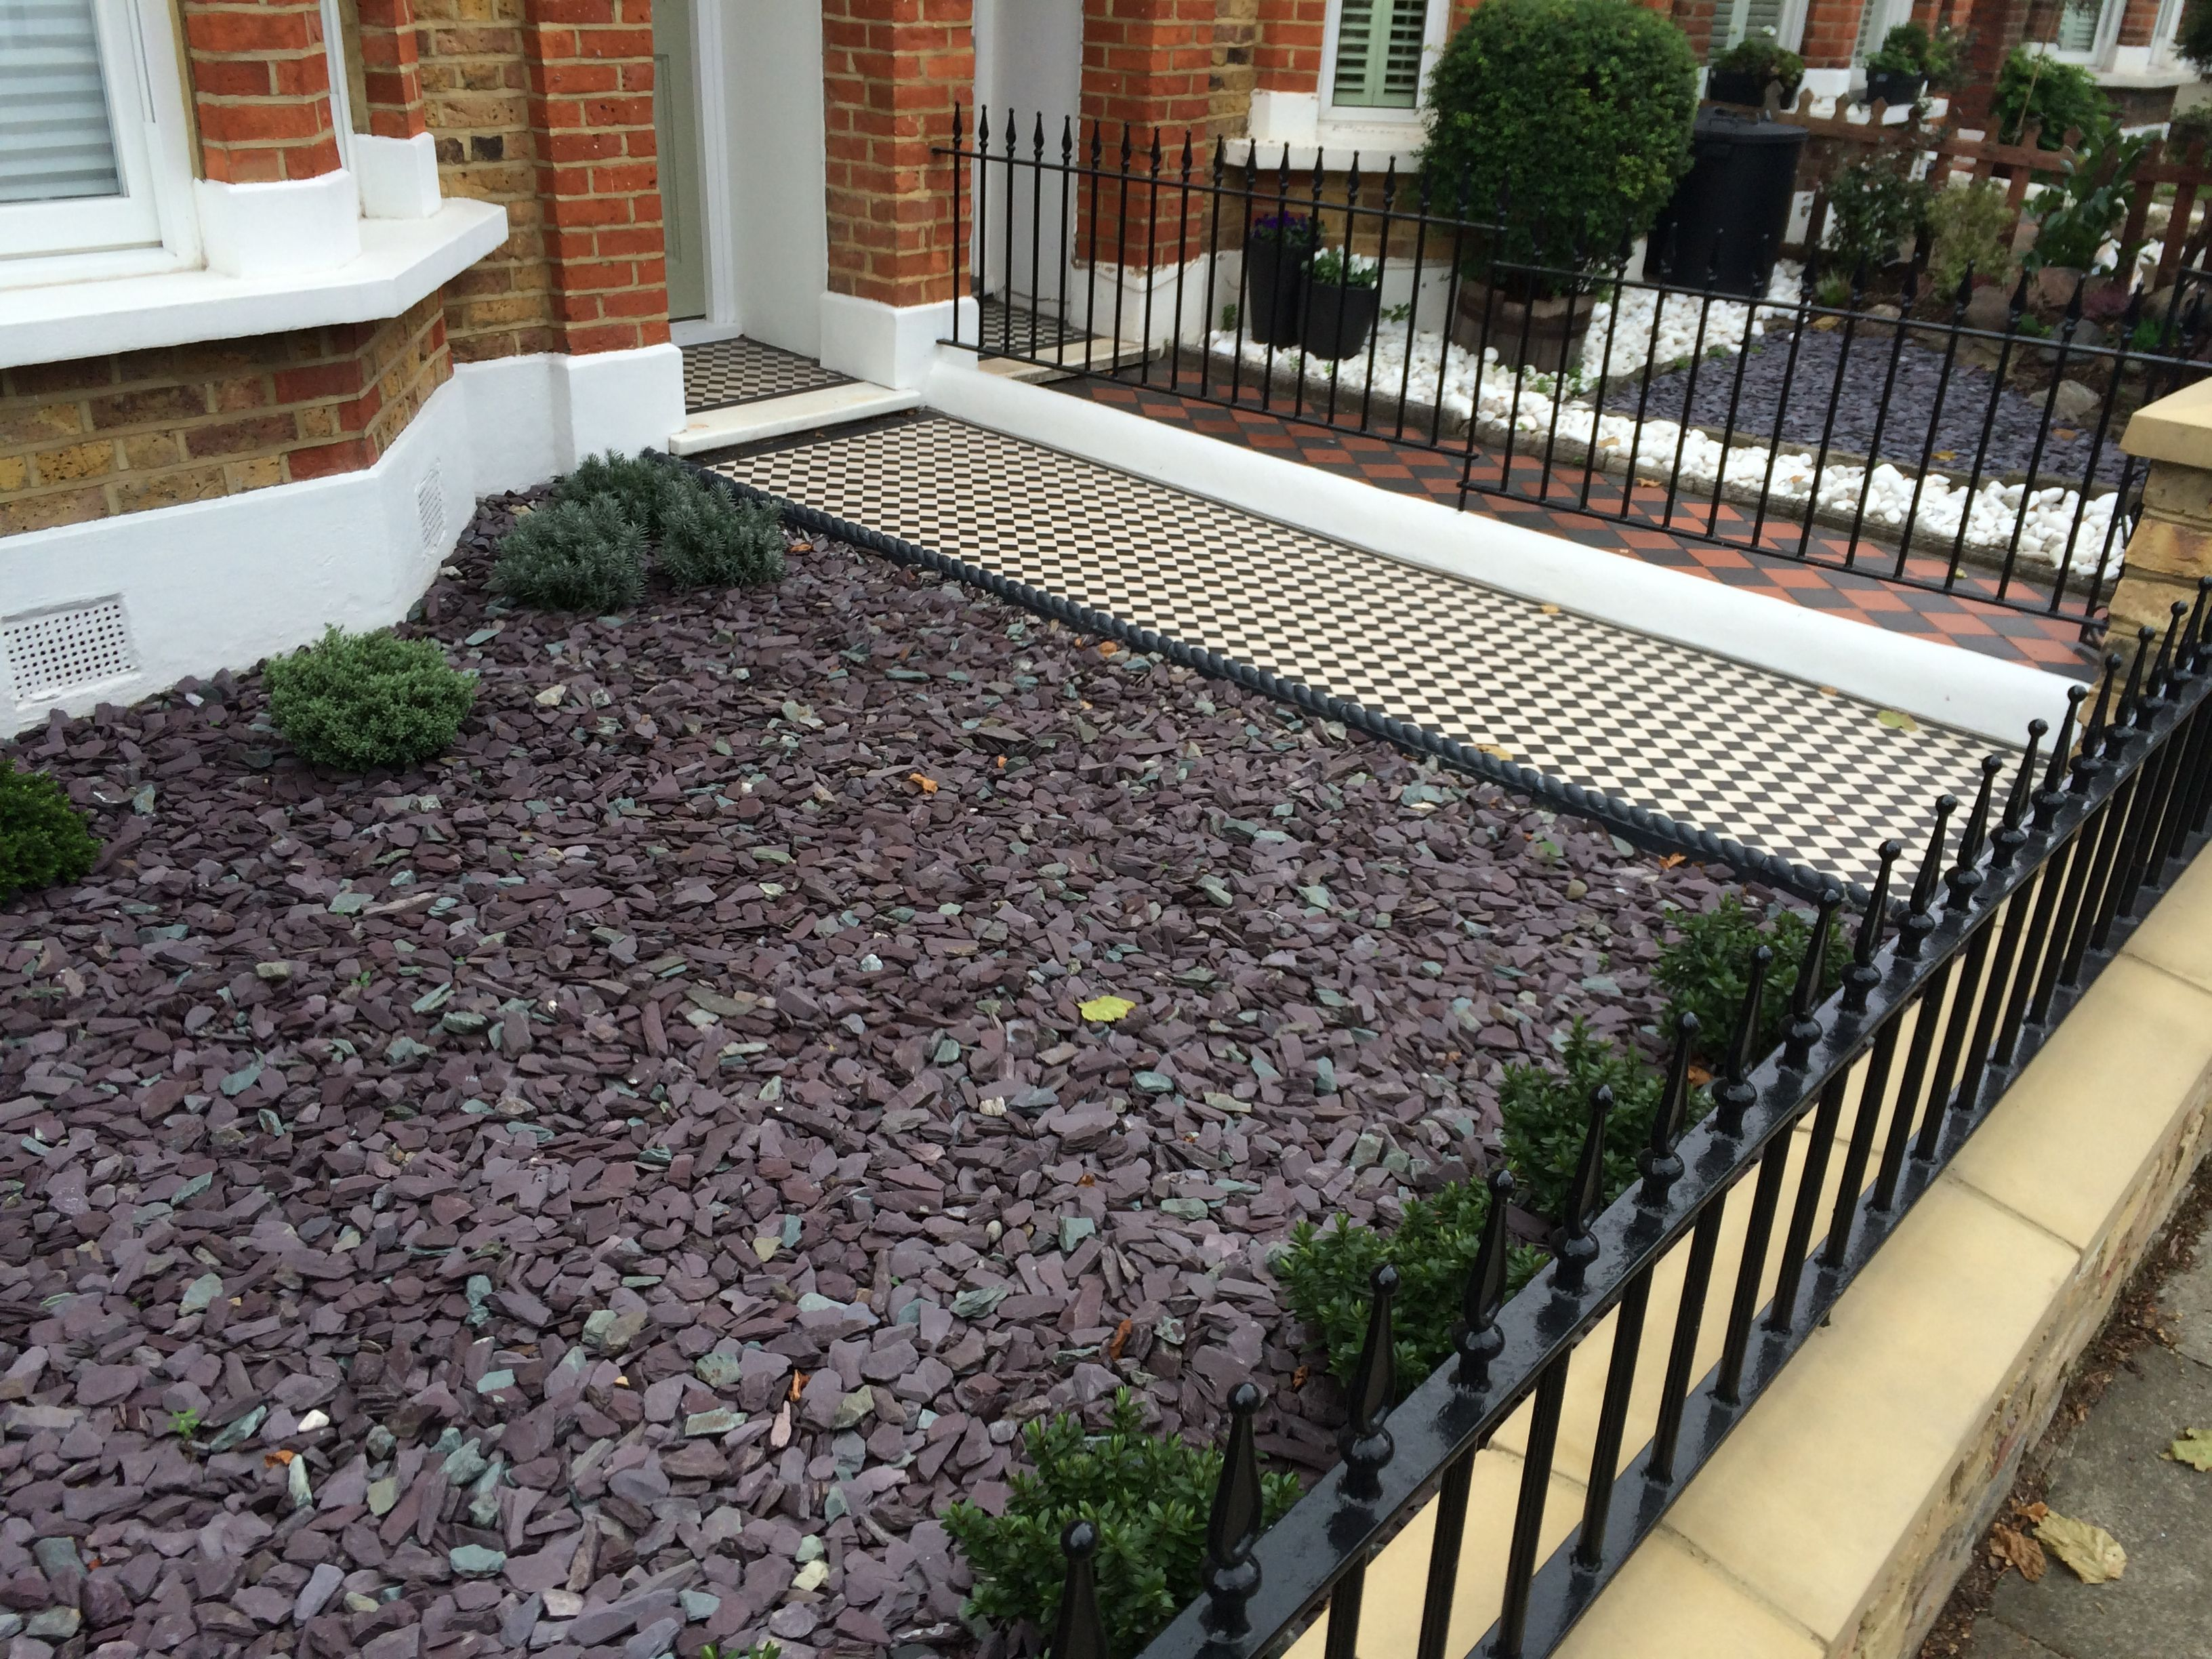 plum slate gravel hebes buxus balls black and white tiled path